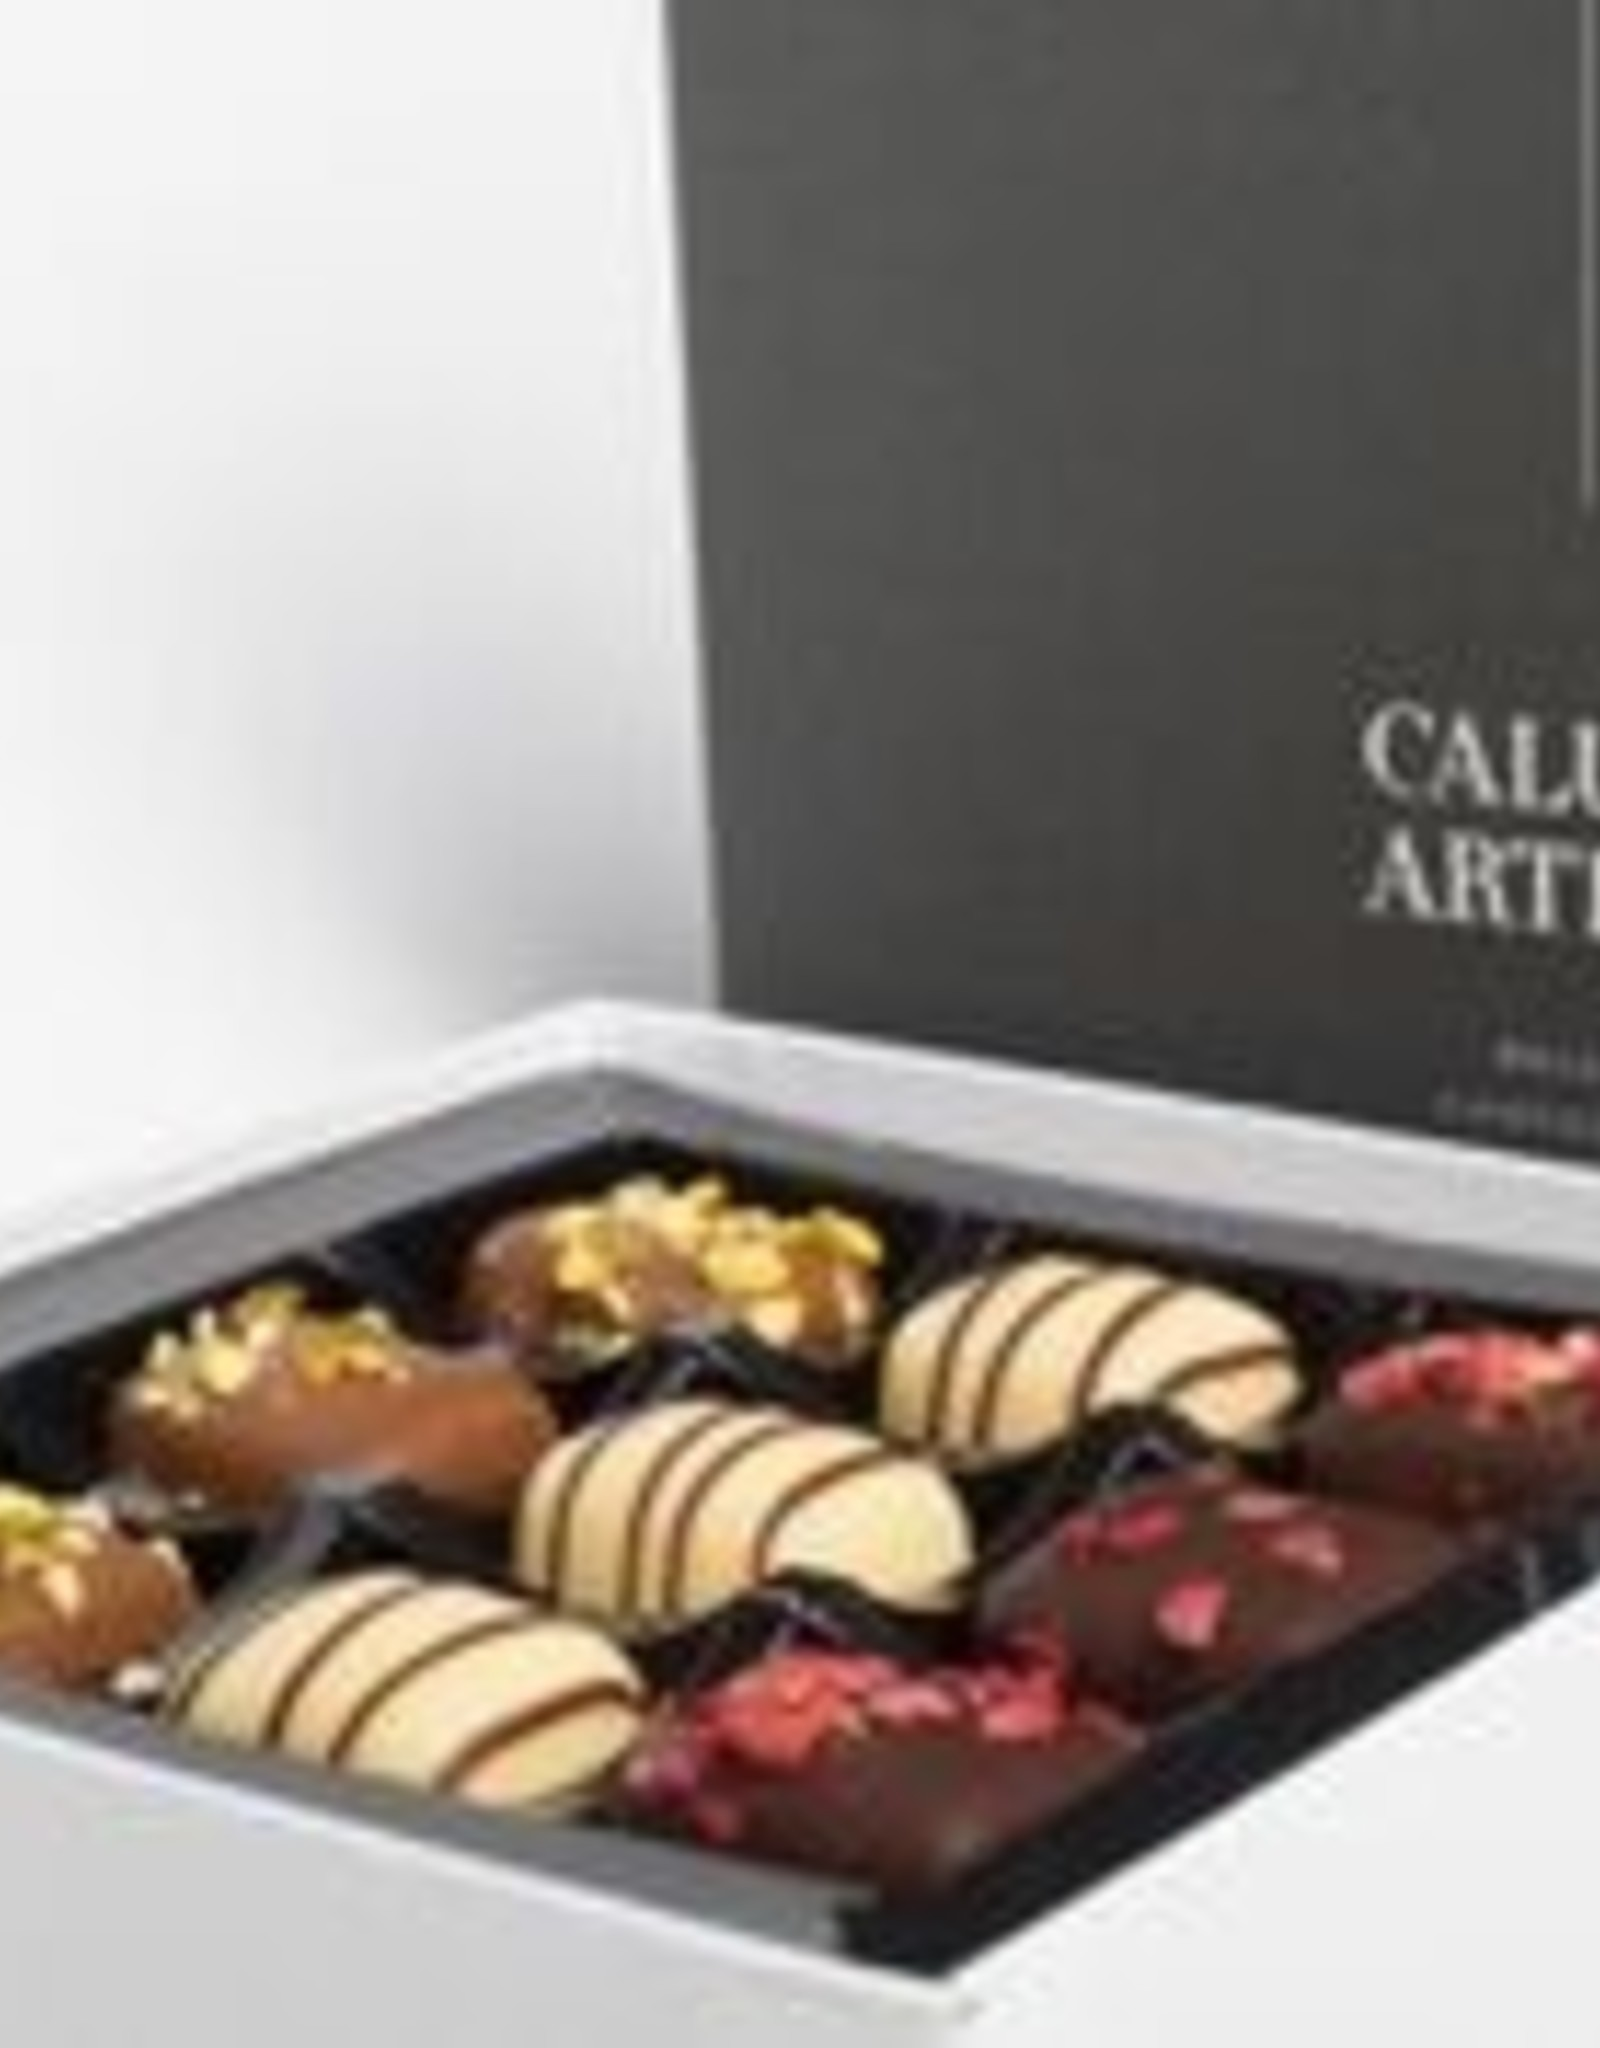 Caluwe Artisan Rigid box 125g - marzipan assortment - UTZ